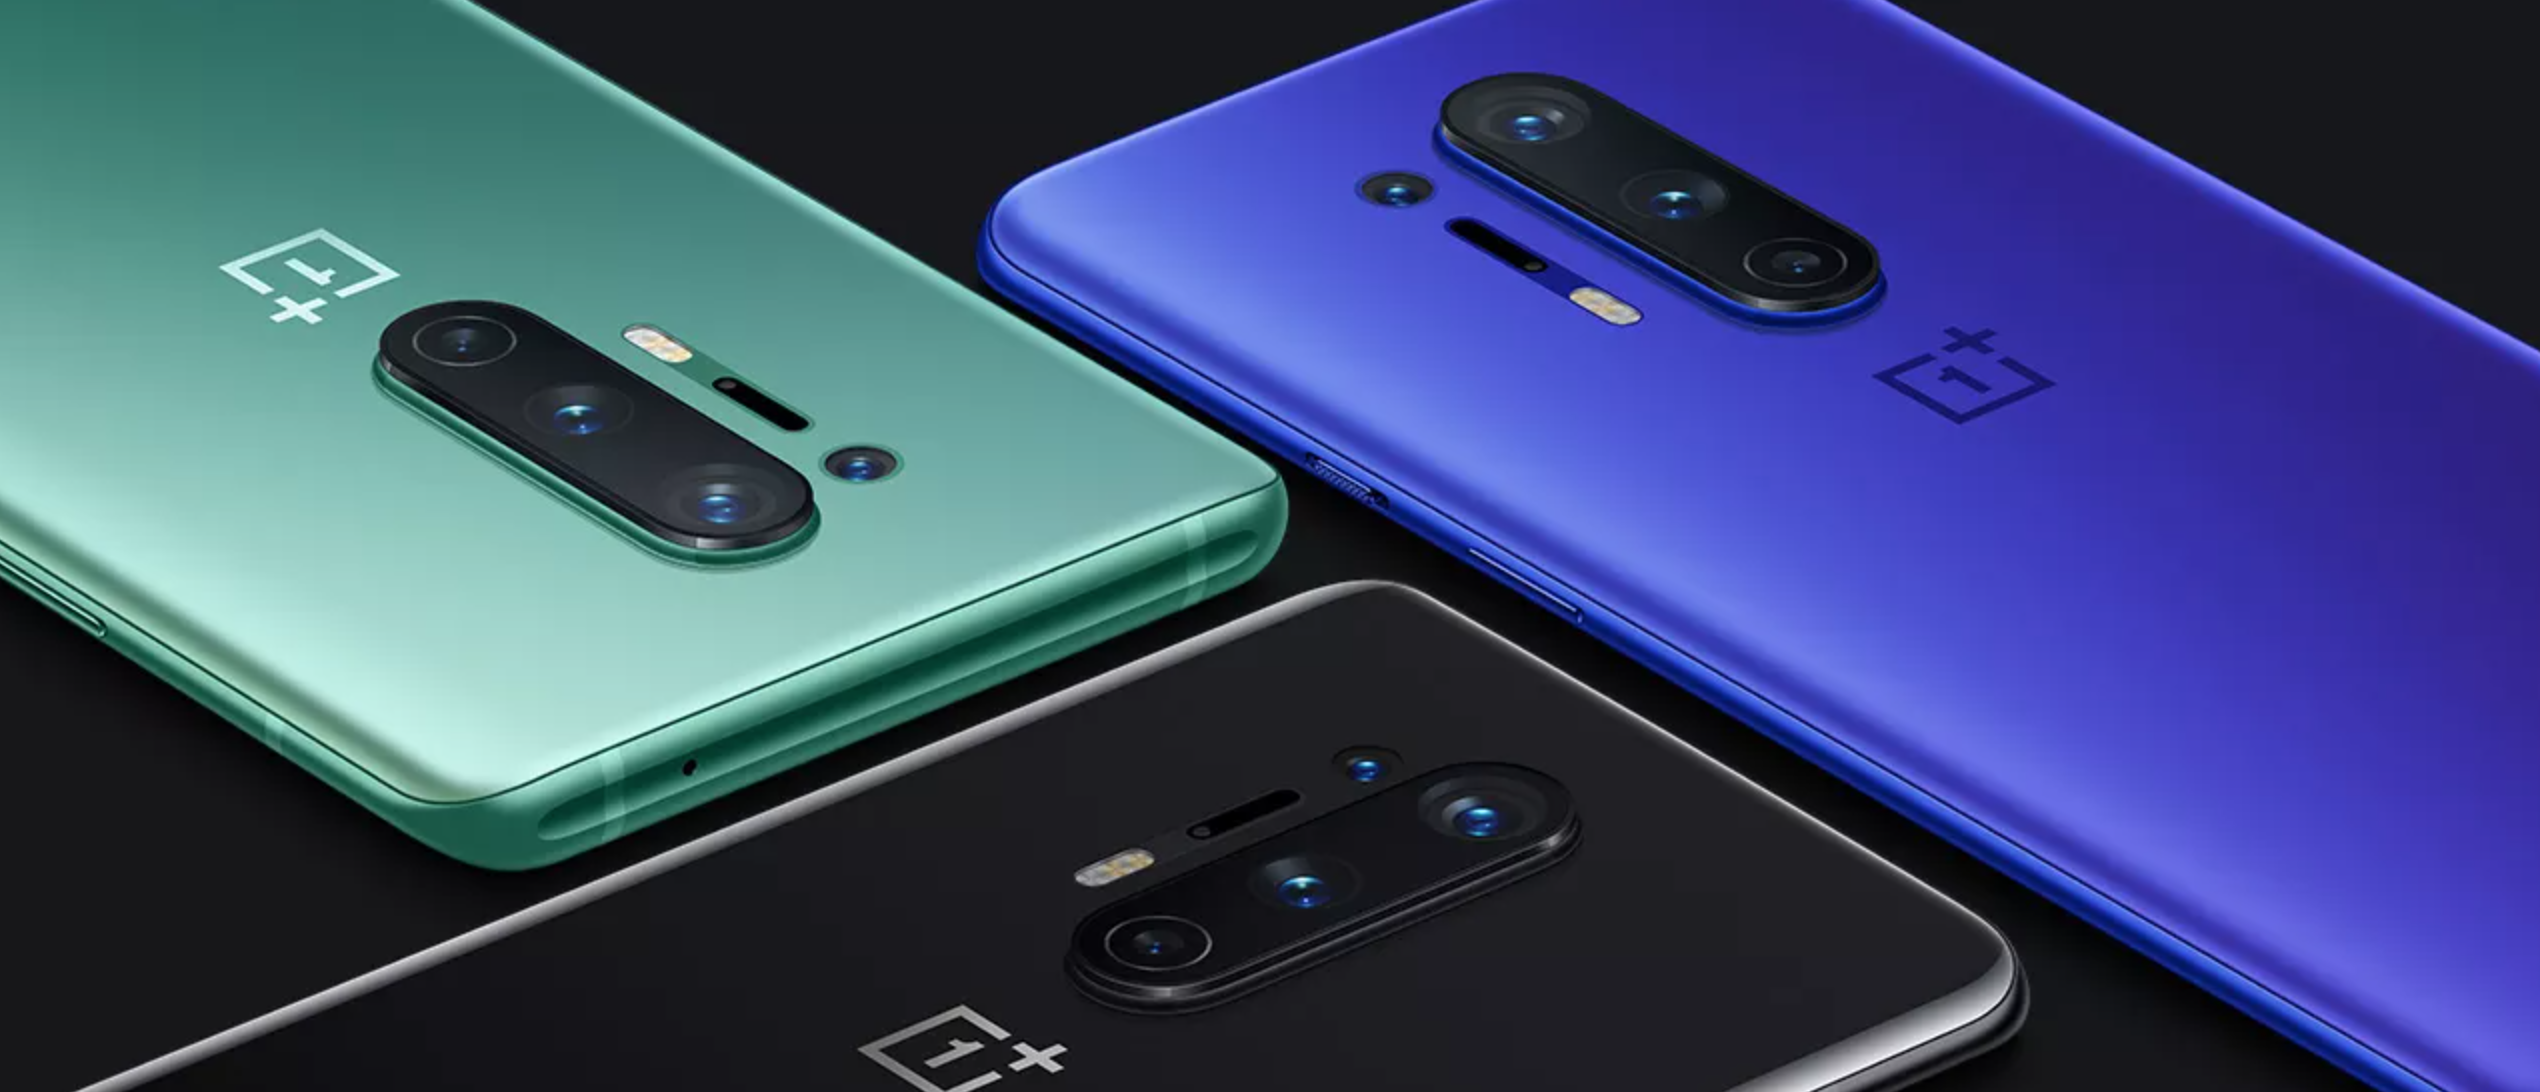 OnePlus 8 pro Black Friday oneplus black friday 2020